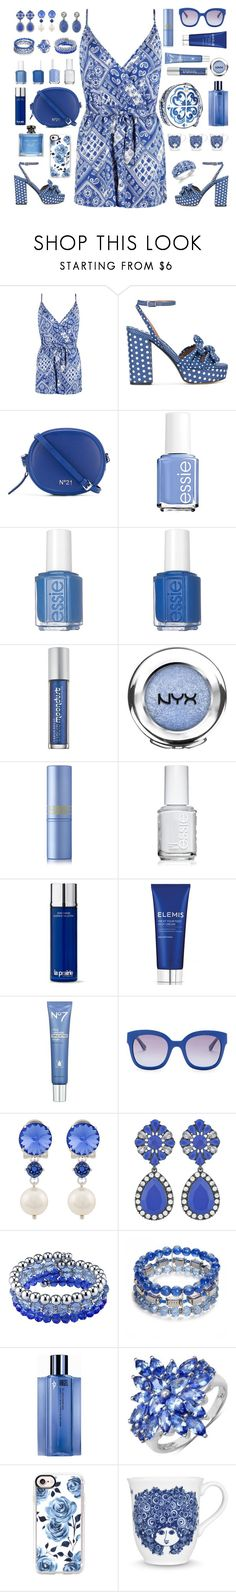 """Blue"" by fatima92 ❤ liked on Polyvore featuring Boohoo, Tabitha Simmons, N°21, Dolce&Gabbana, Essie, Urban Decay, NYX, Lipstick Queen, La Prairie and Elemis"